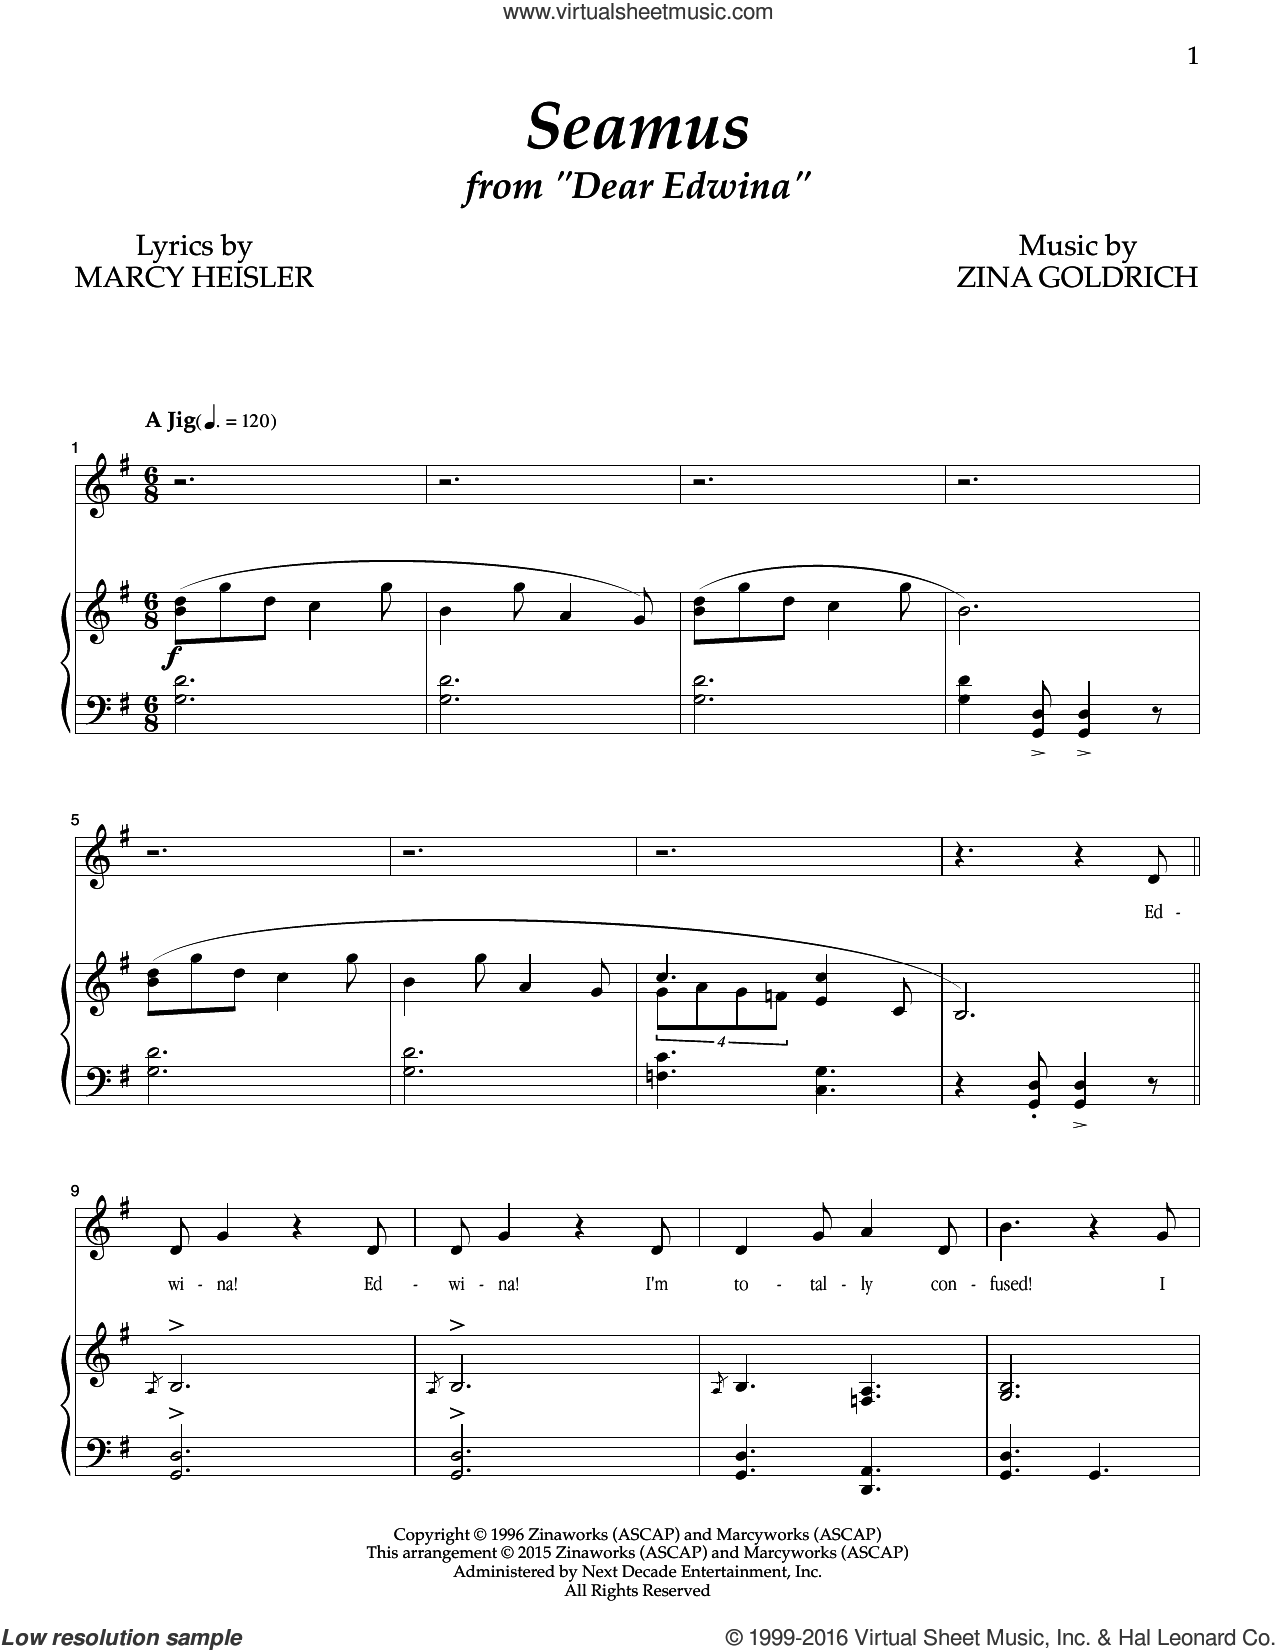 Seamus sheet music for voice and piano by Marcy Heisler